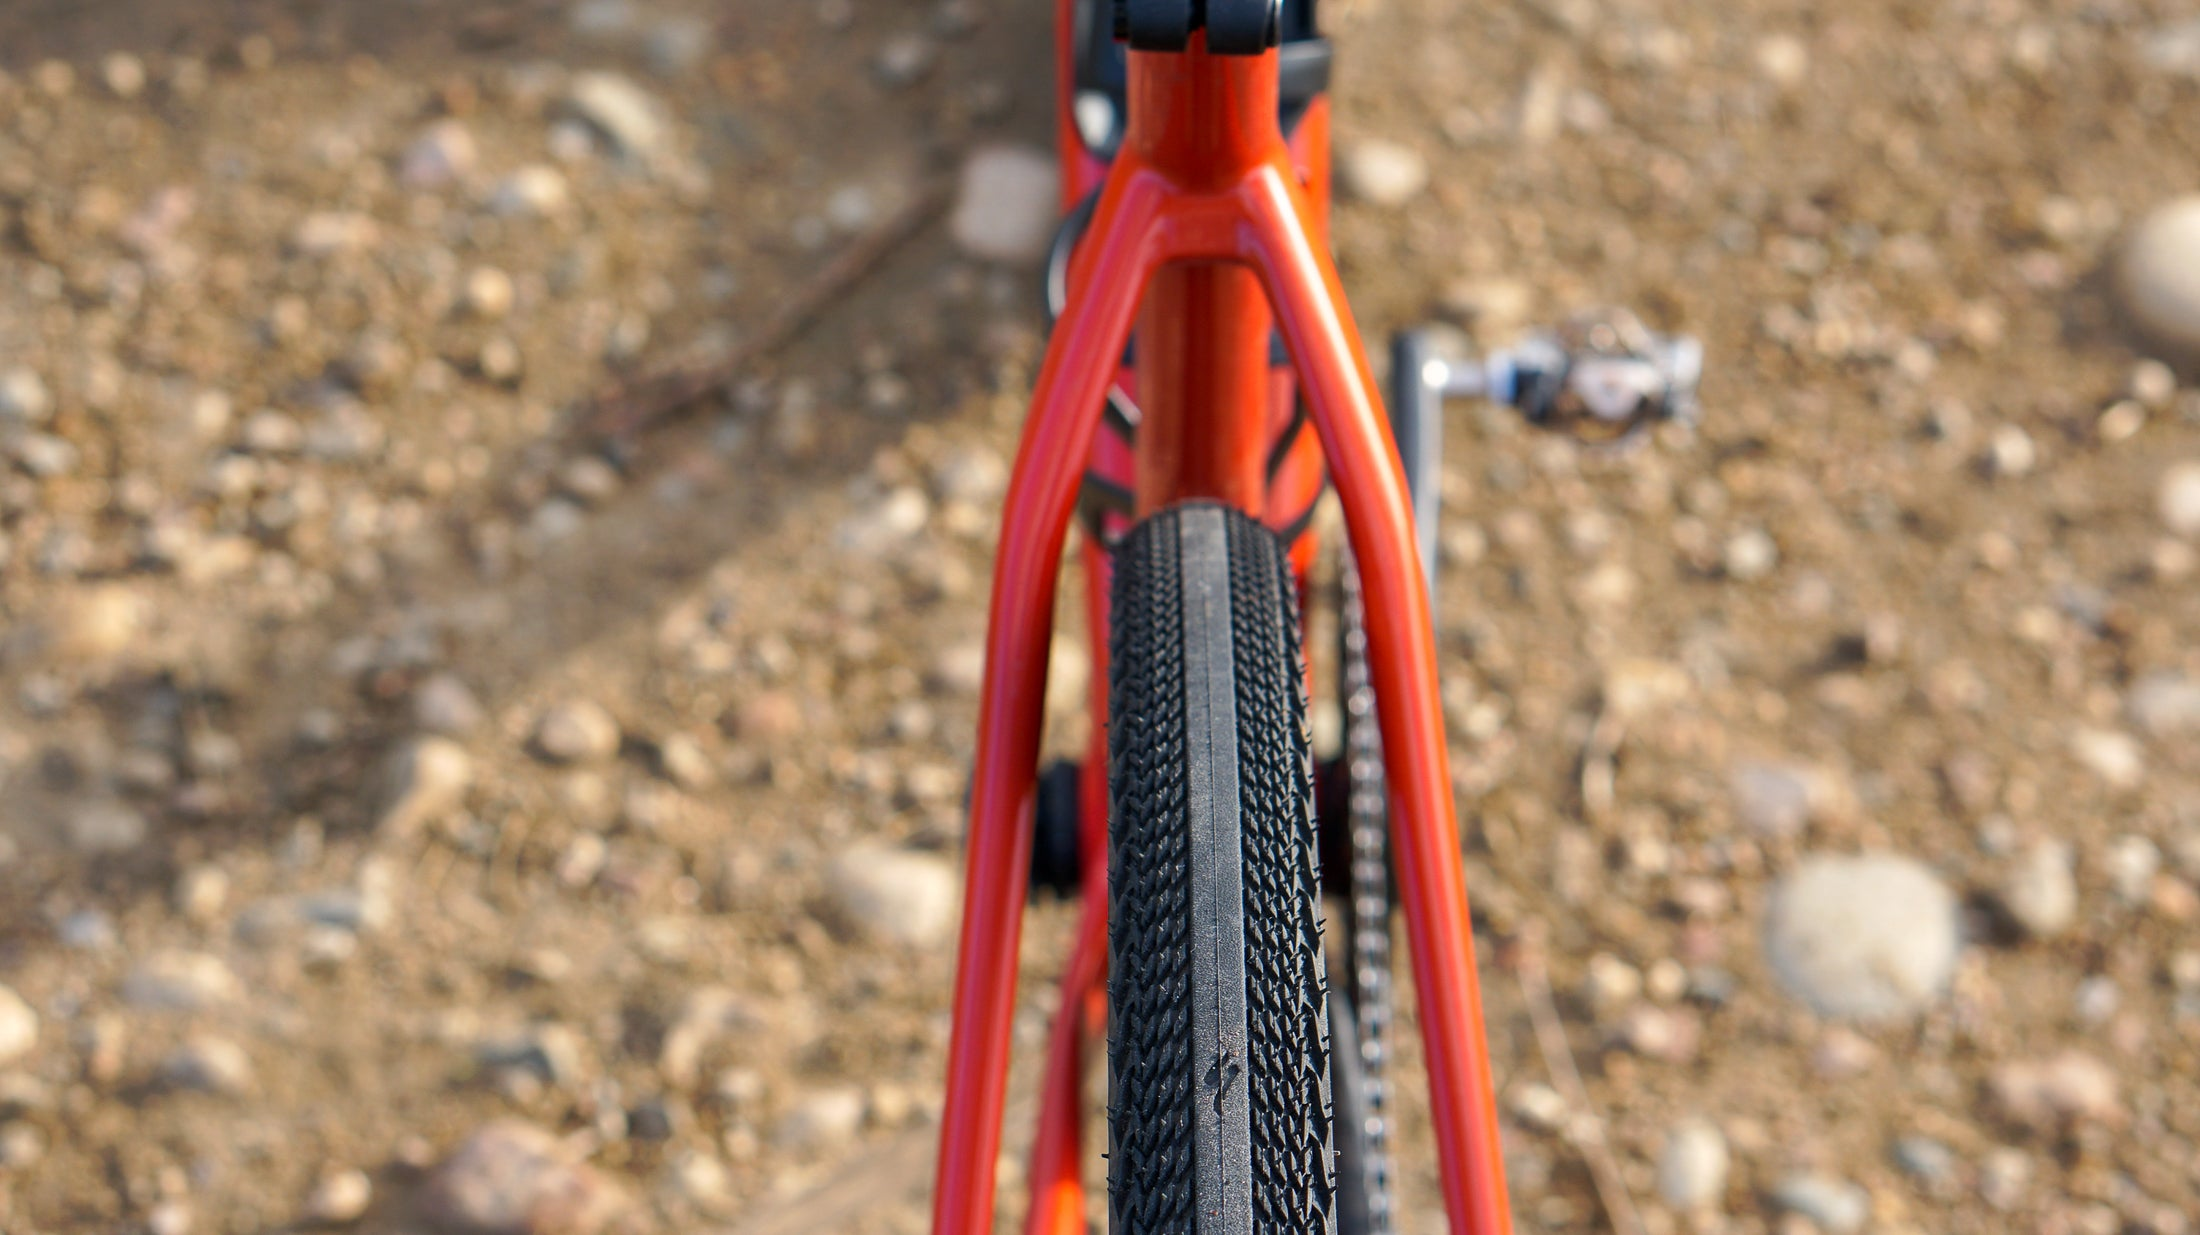 Specialized Pathfinder Pro tires